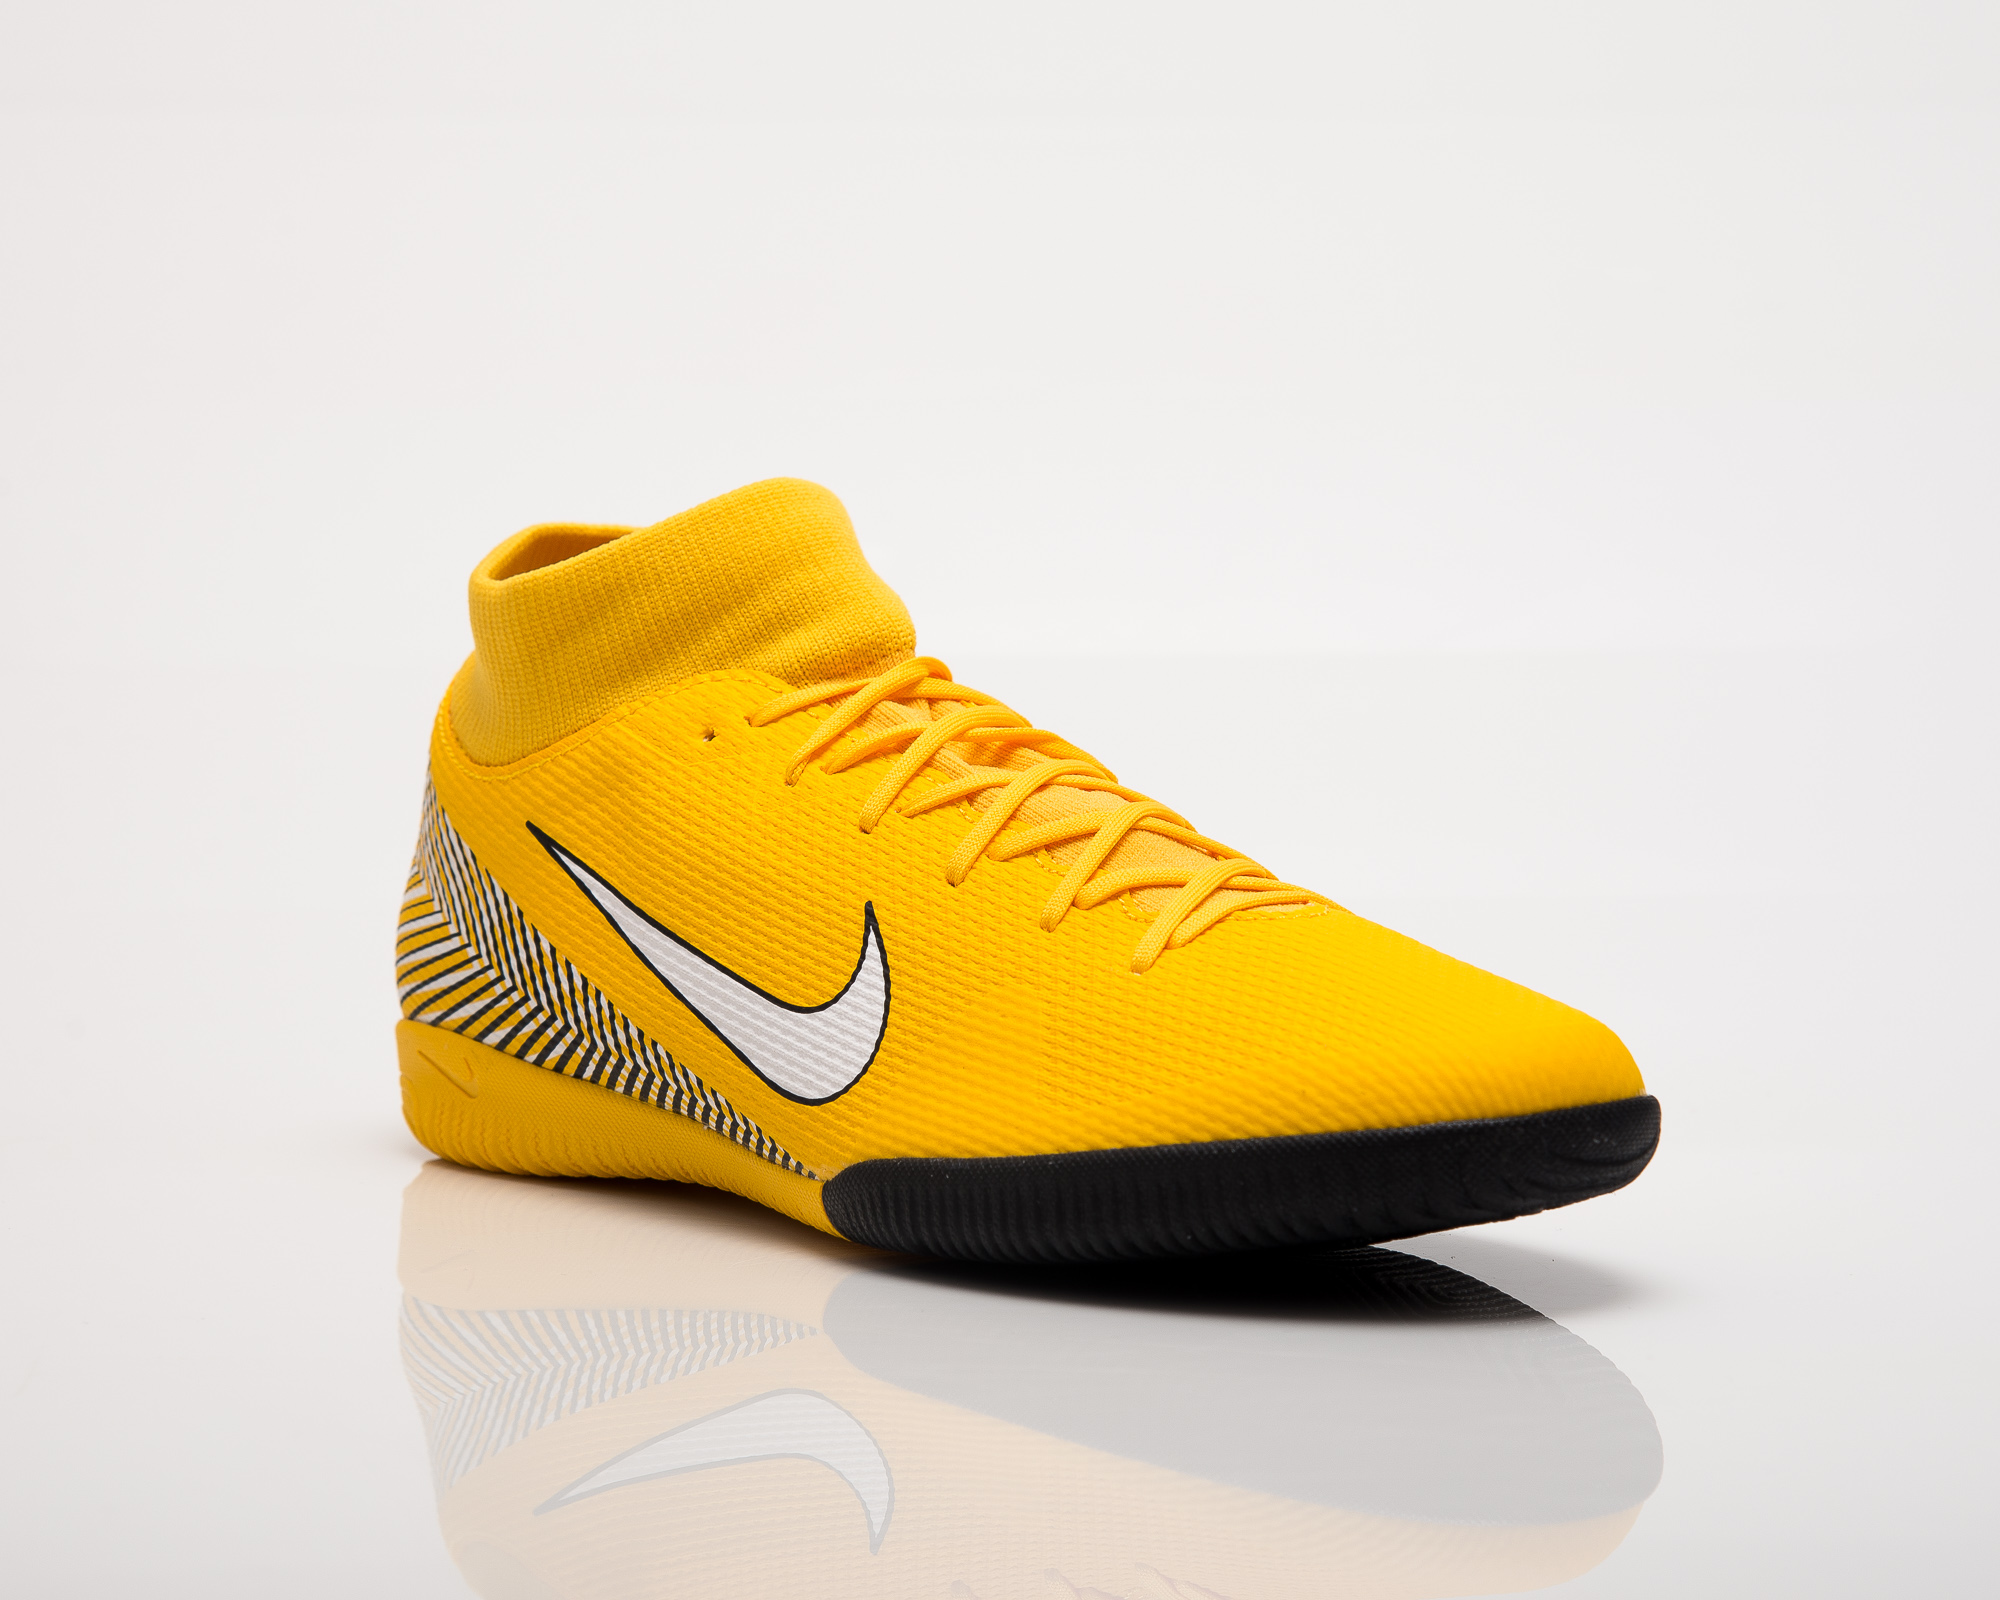 68d5f3be4 Nike Mercurial Superfly VI Academy Neymar Jr. IC Soccer Cleats ...